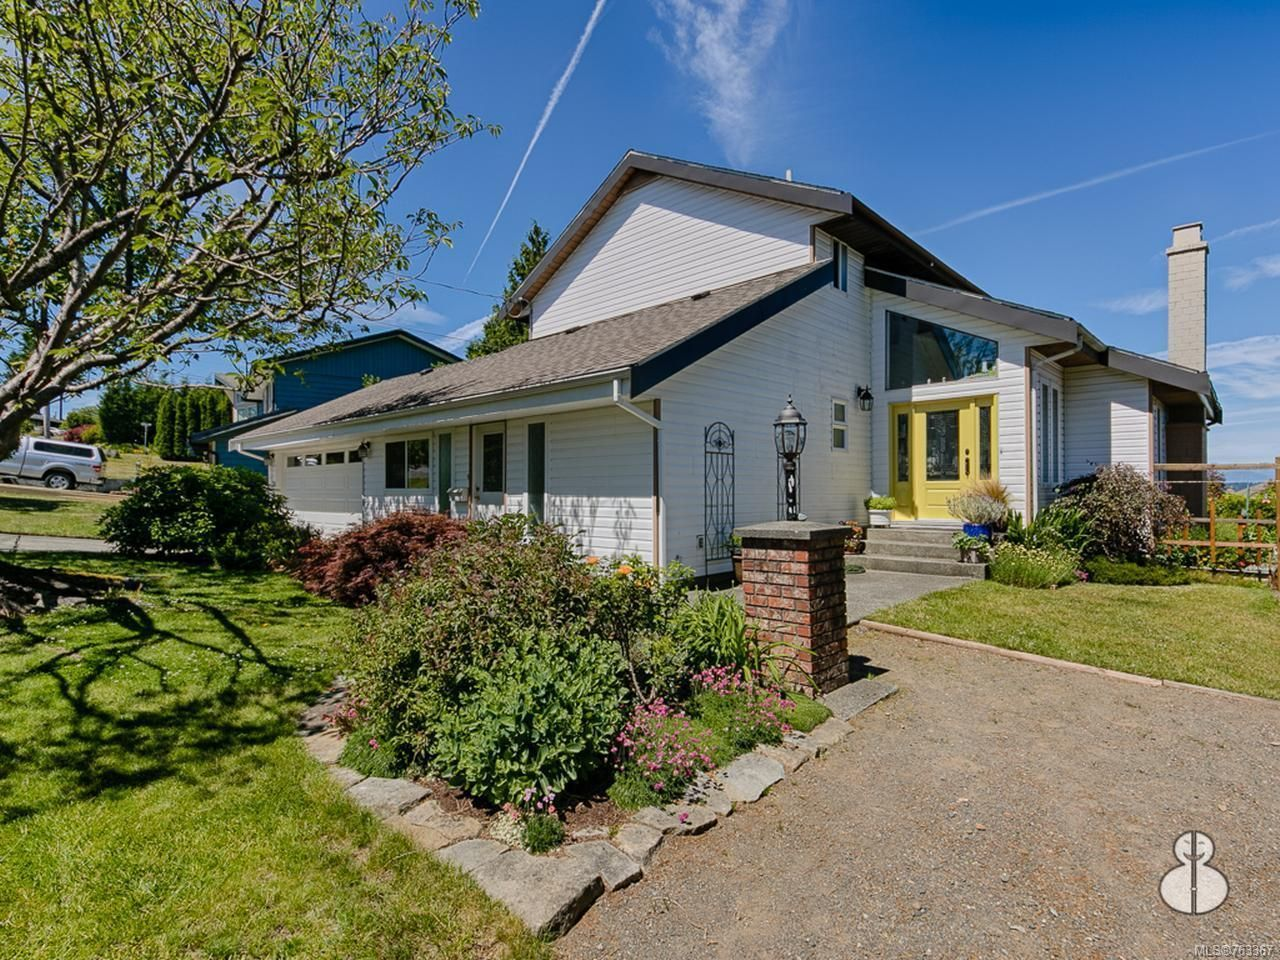 Main Photo: 559 S Alder St in CAMPBELL RIVER: CR Campbell River Central House for sale (Campbell River)  : MLS®# 763367